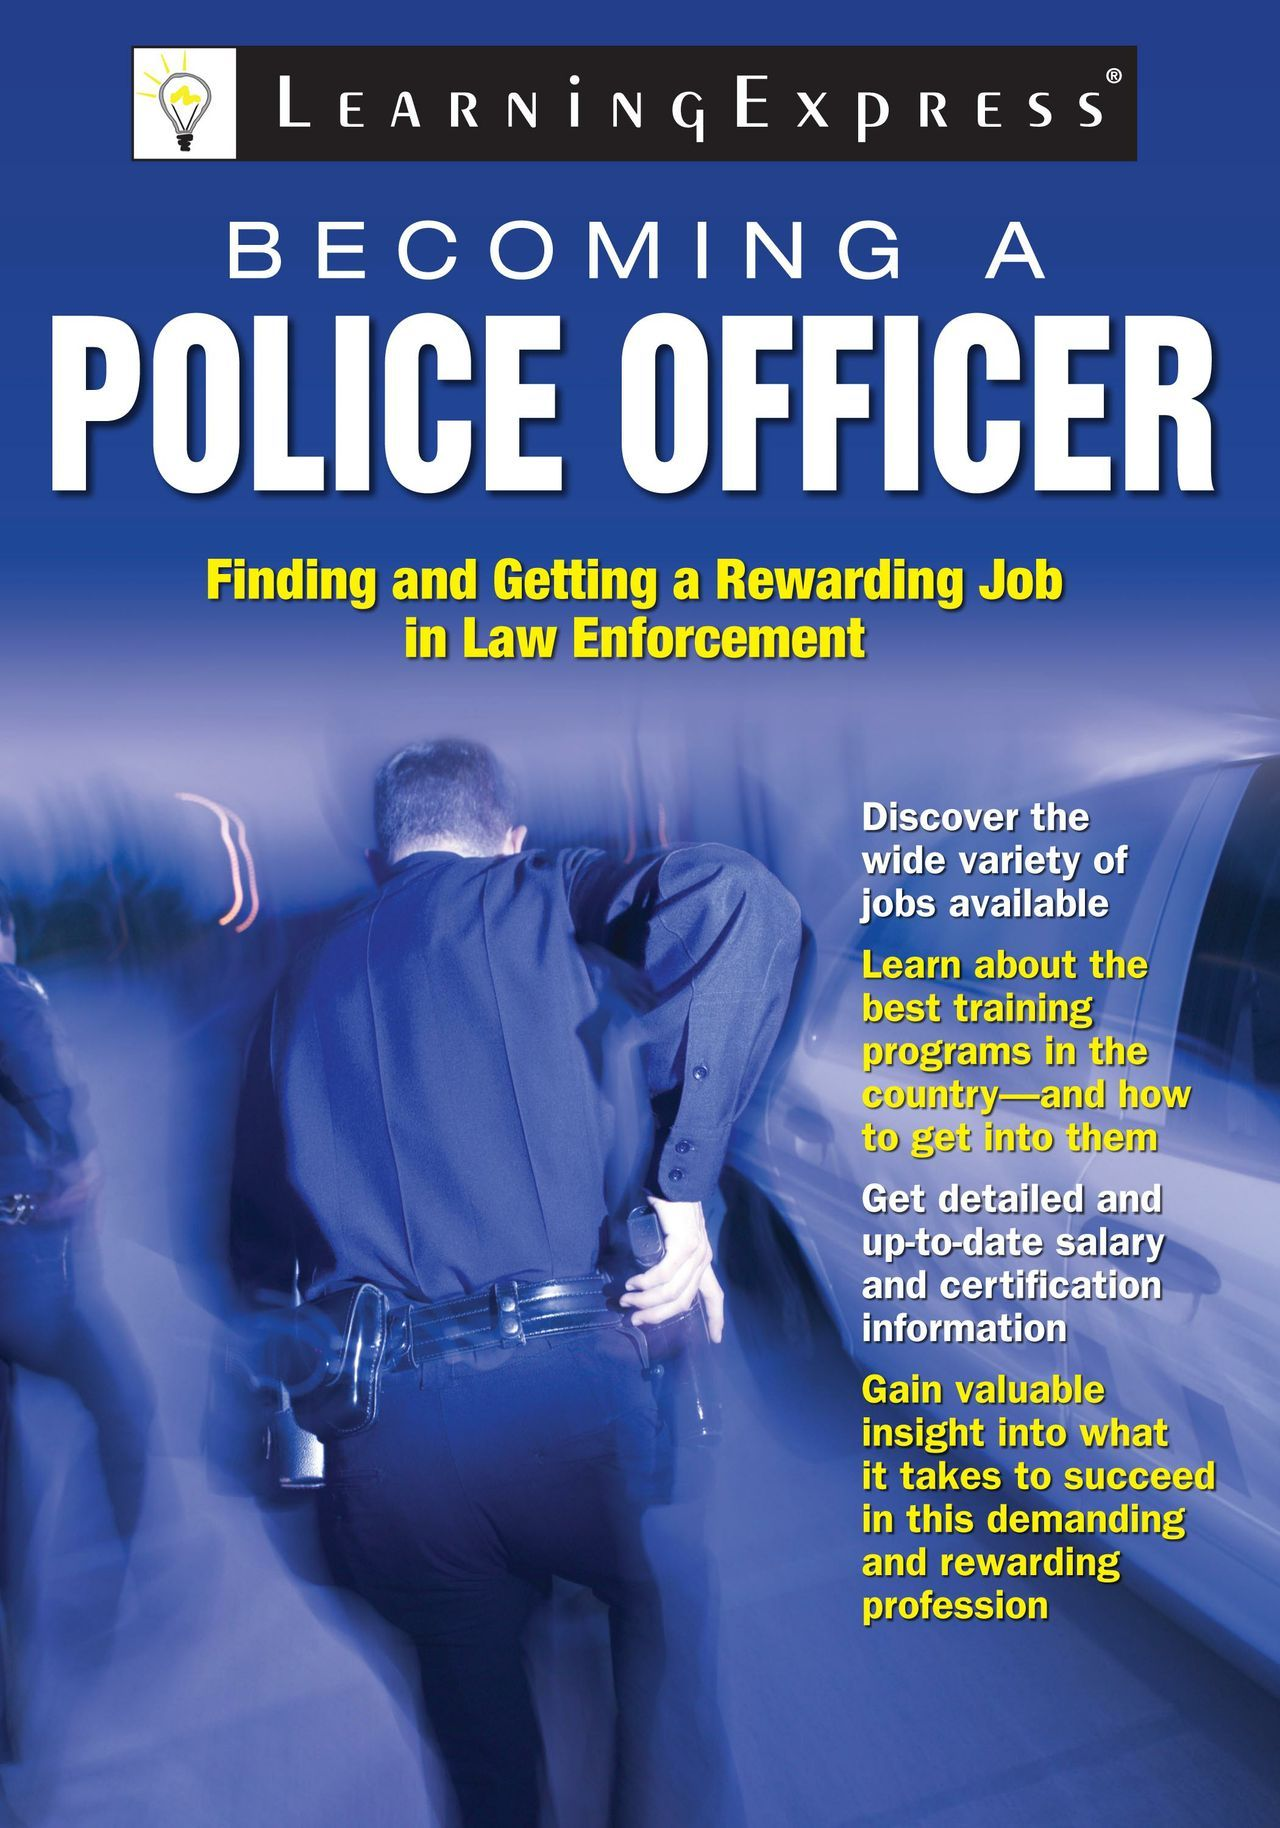 Becoming A Police Officer 196 Pages Law Enforcement Jobs Police Officer Police Officer Requirements